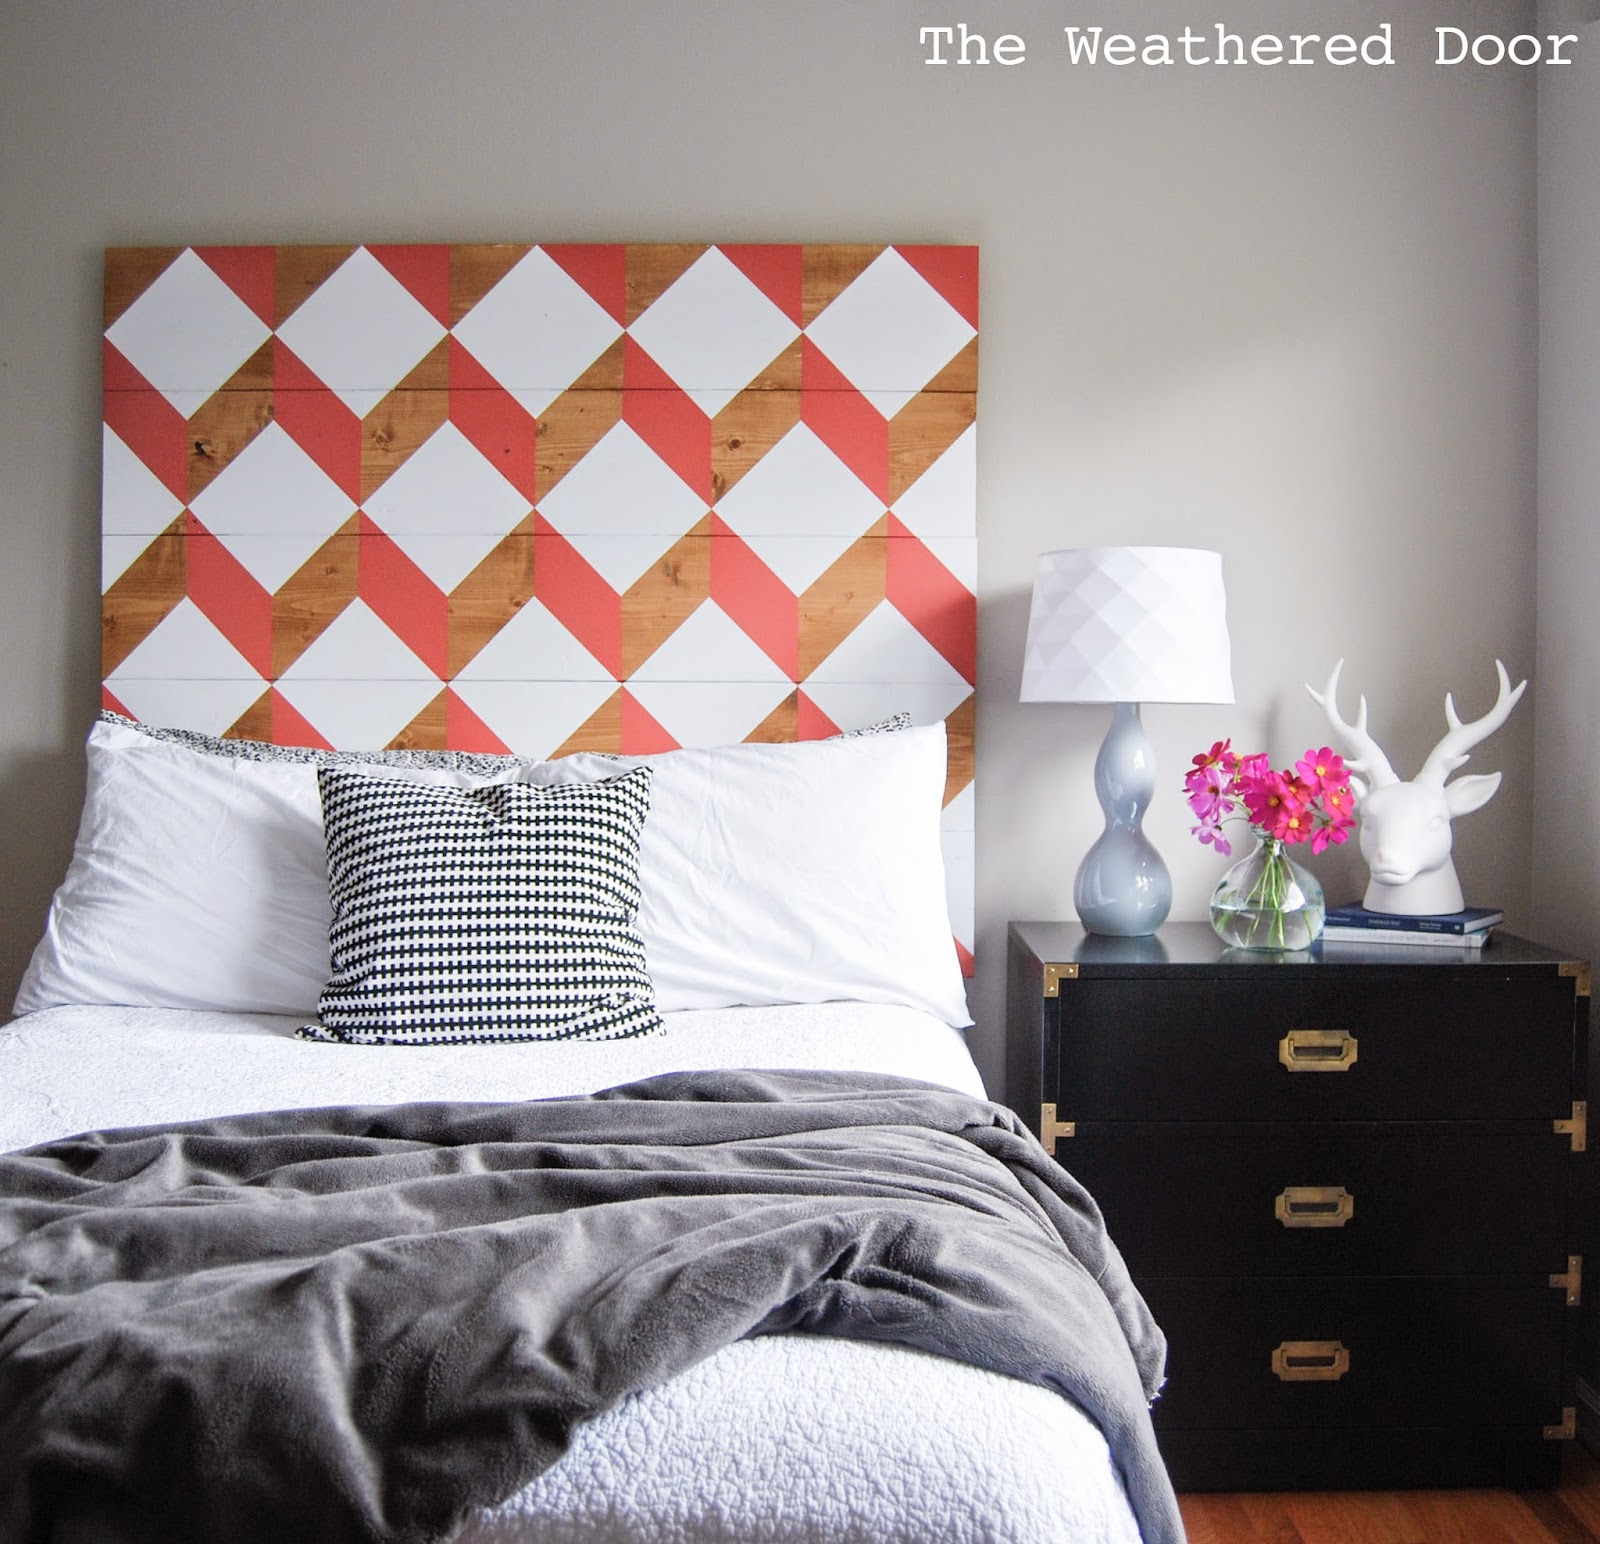 DIY Home Decor Projects and Tutorials at the36thavenue.com These are amazing!